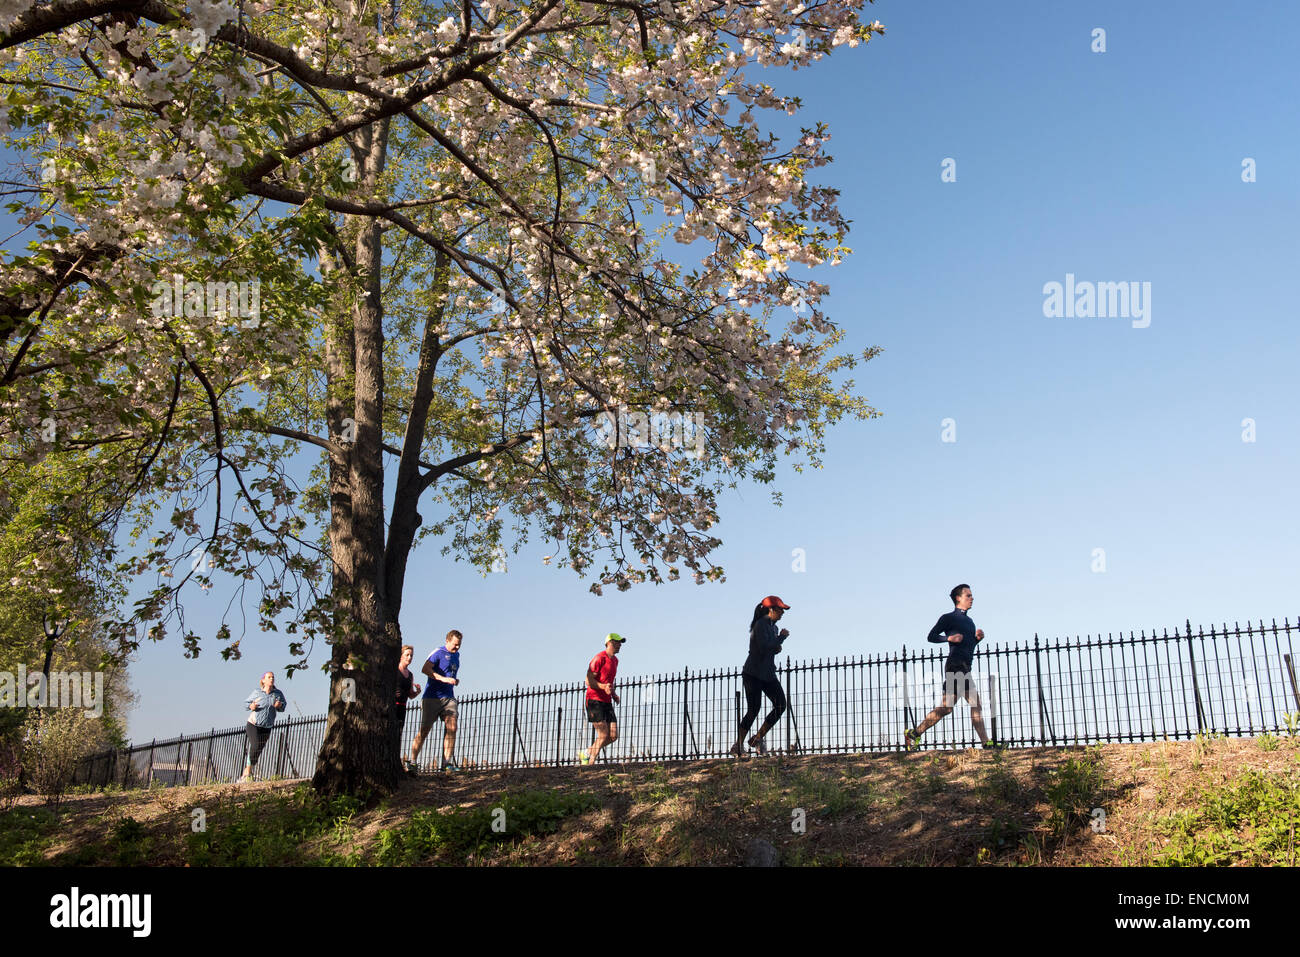 Runners at the Jacqueline Kennedy Onassis Reservoir in Central Park, NYC early on a spring morning - Stock Image